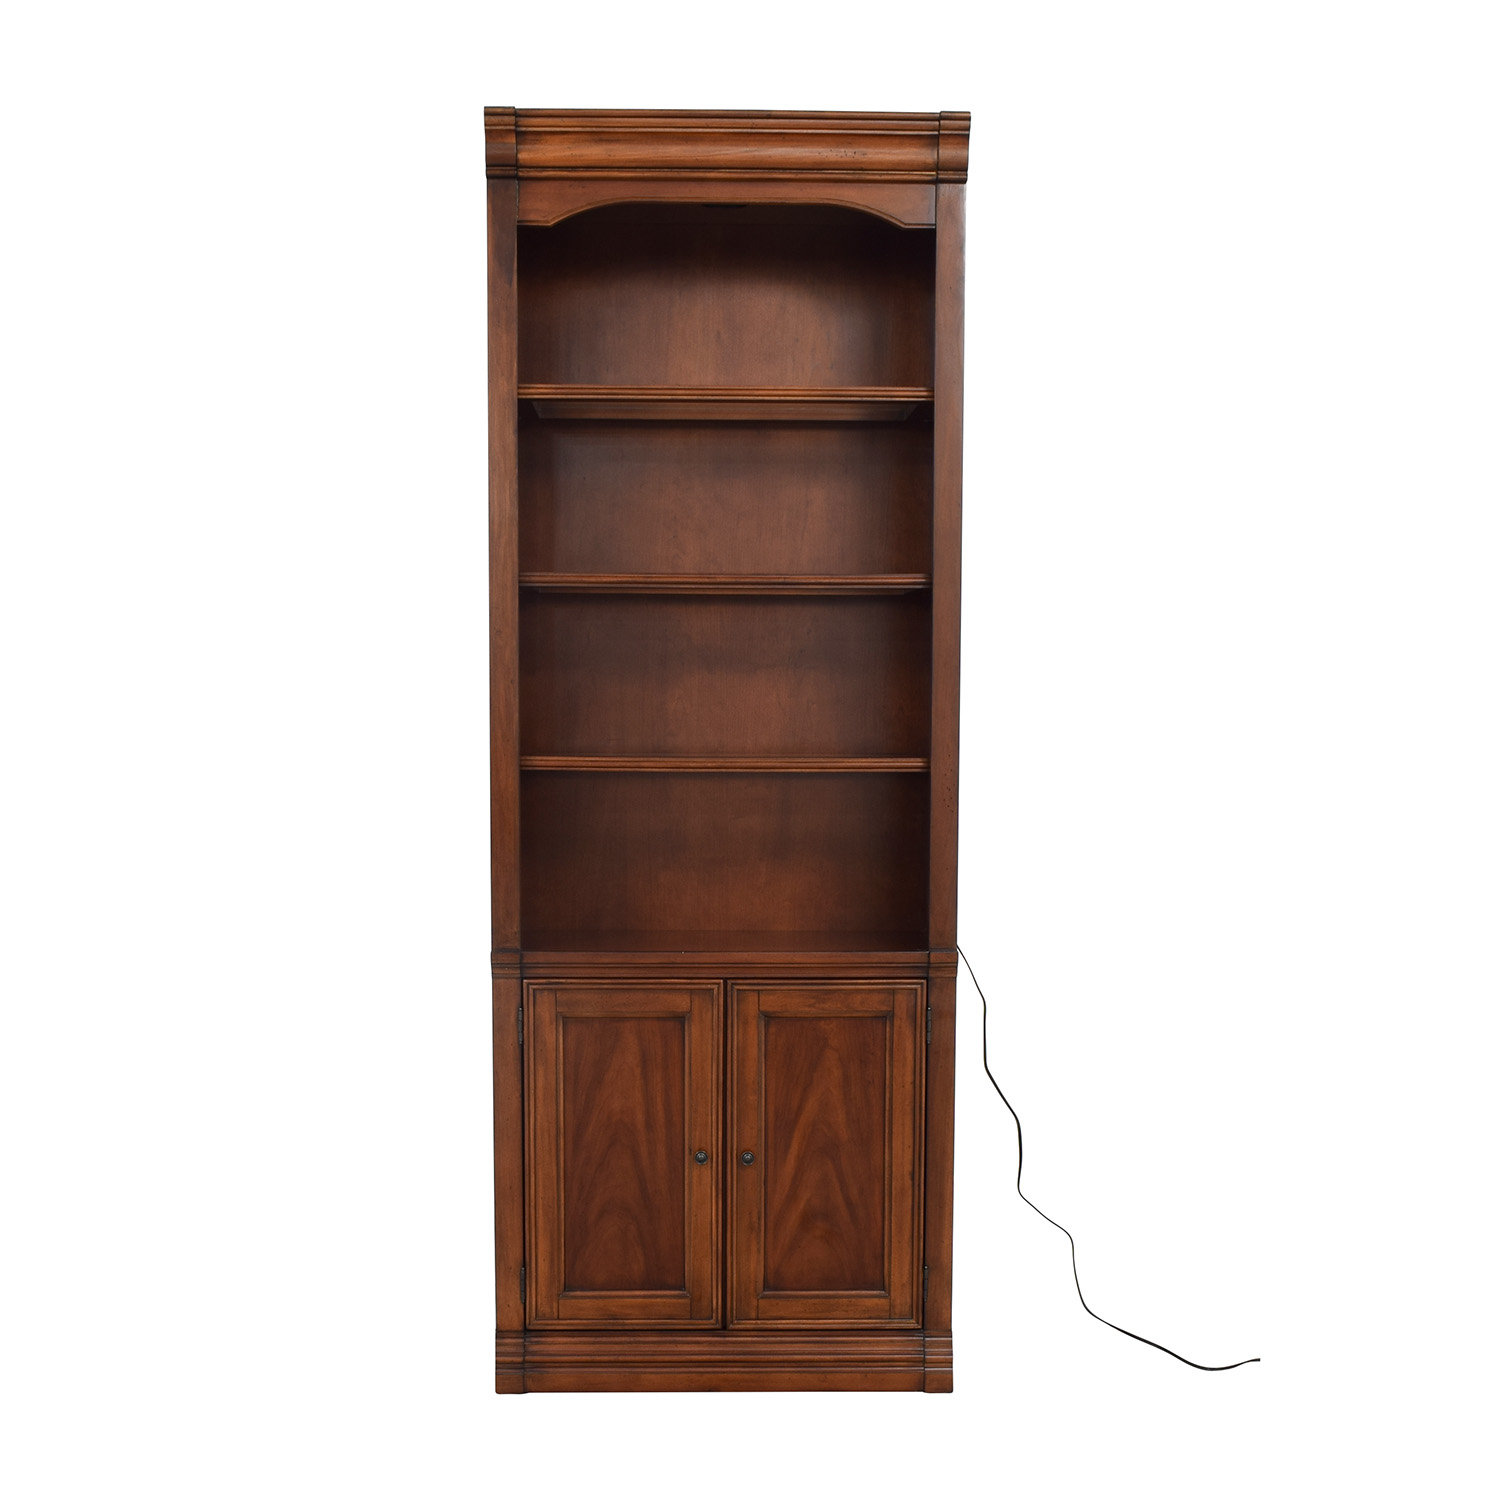 Hooker Furniture Hooker Bookcase for sale